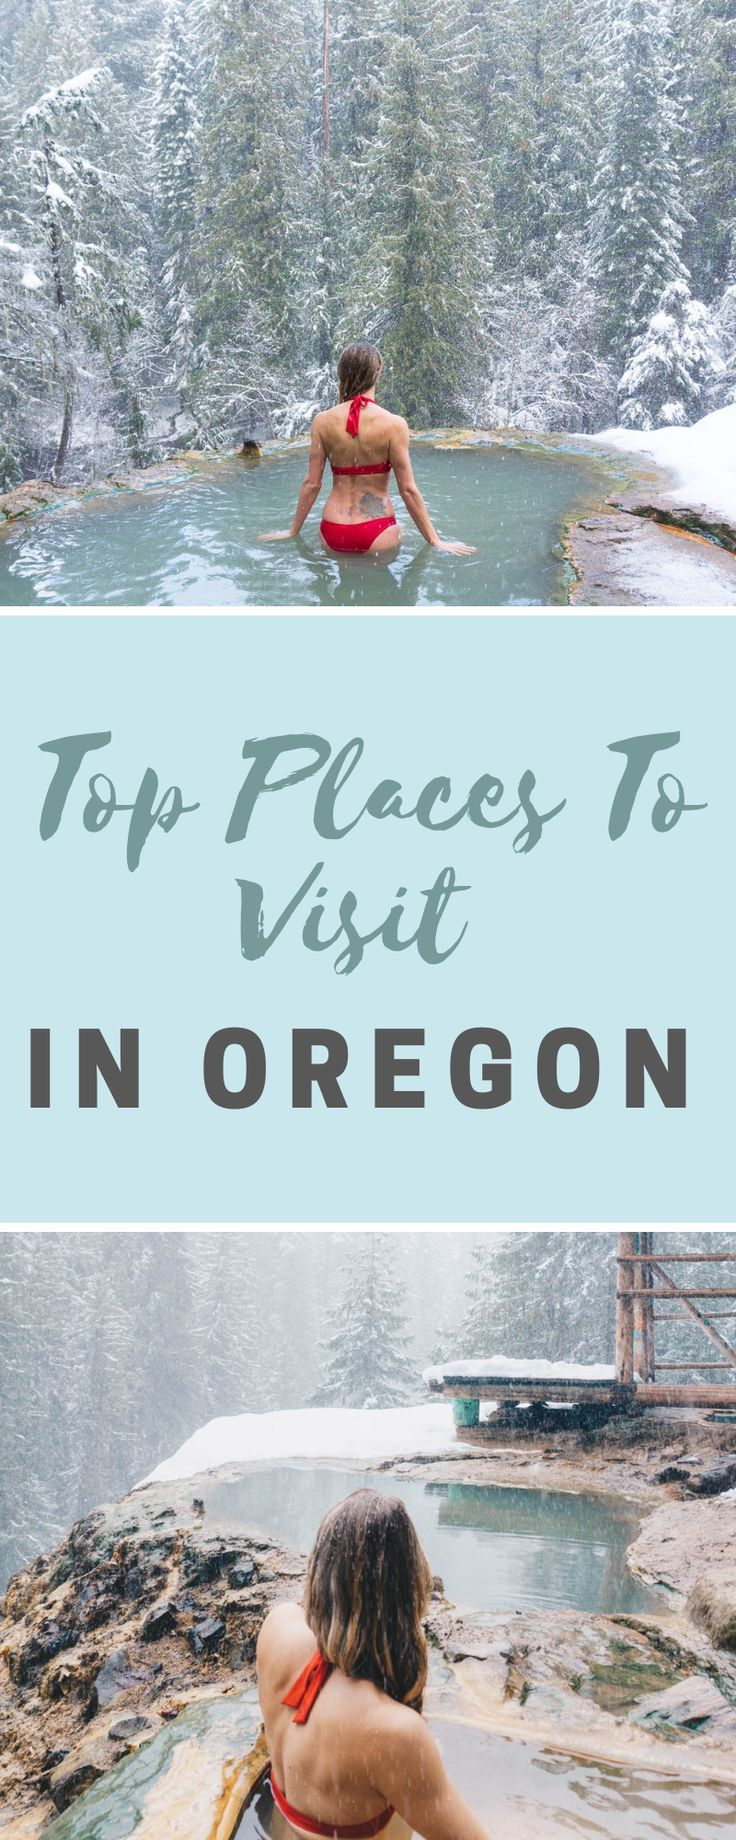 A guide to the top 10 beautiful places to visit in Oregon! From hidden hot springs to incredible waterfalls, we cover all the best destinations in Oregon.